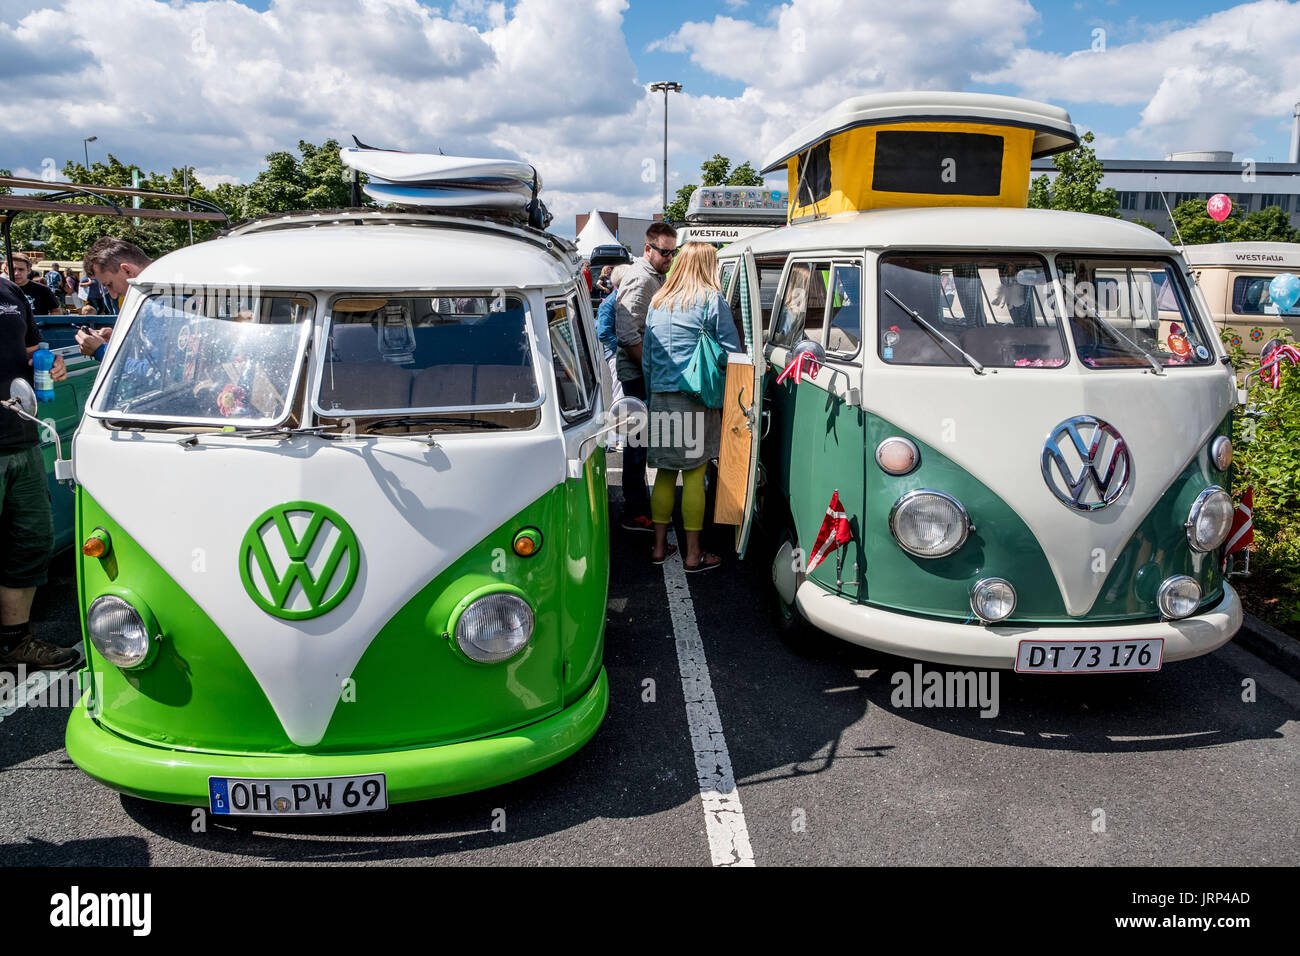 Stocken, Germany. 06th Aug, 2017. Visitors watch old VW Kombis in the grounds of the Volkswagen Commercial Vehicles Plant during the Kombi Meet on the occasion of the 70th anniversary of the Volkswagen Transporter in Stocken, Germany, 06 August 2017. Photo: Peter Steffen/dpa/Alamy Live News - Stock Image